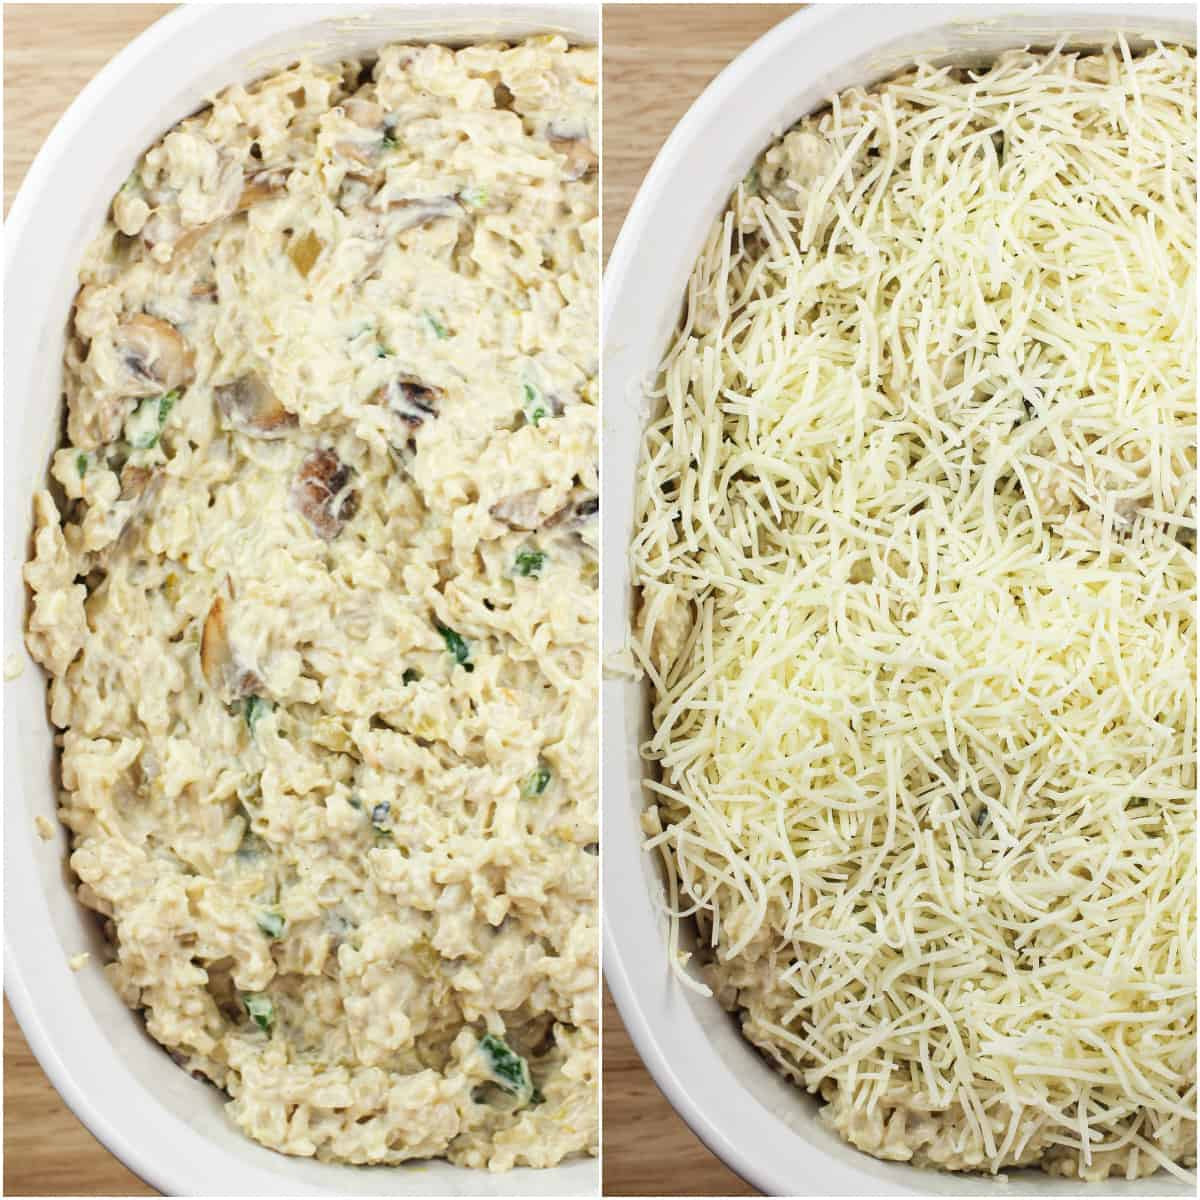 collage of 2 photos: left, green chile rice ingredients combined in white casserole dish; right, green chile rice topped with cheese before baking